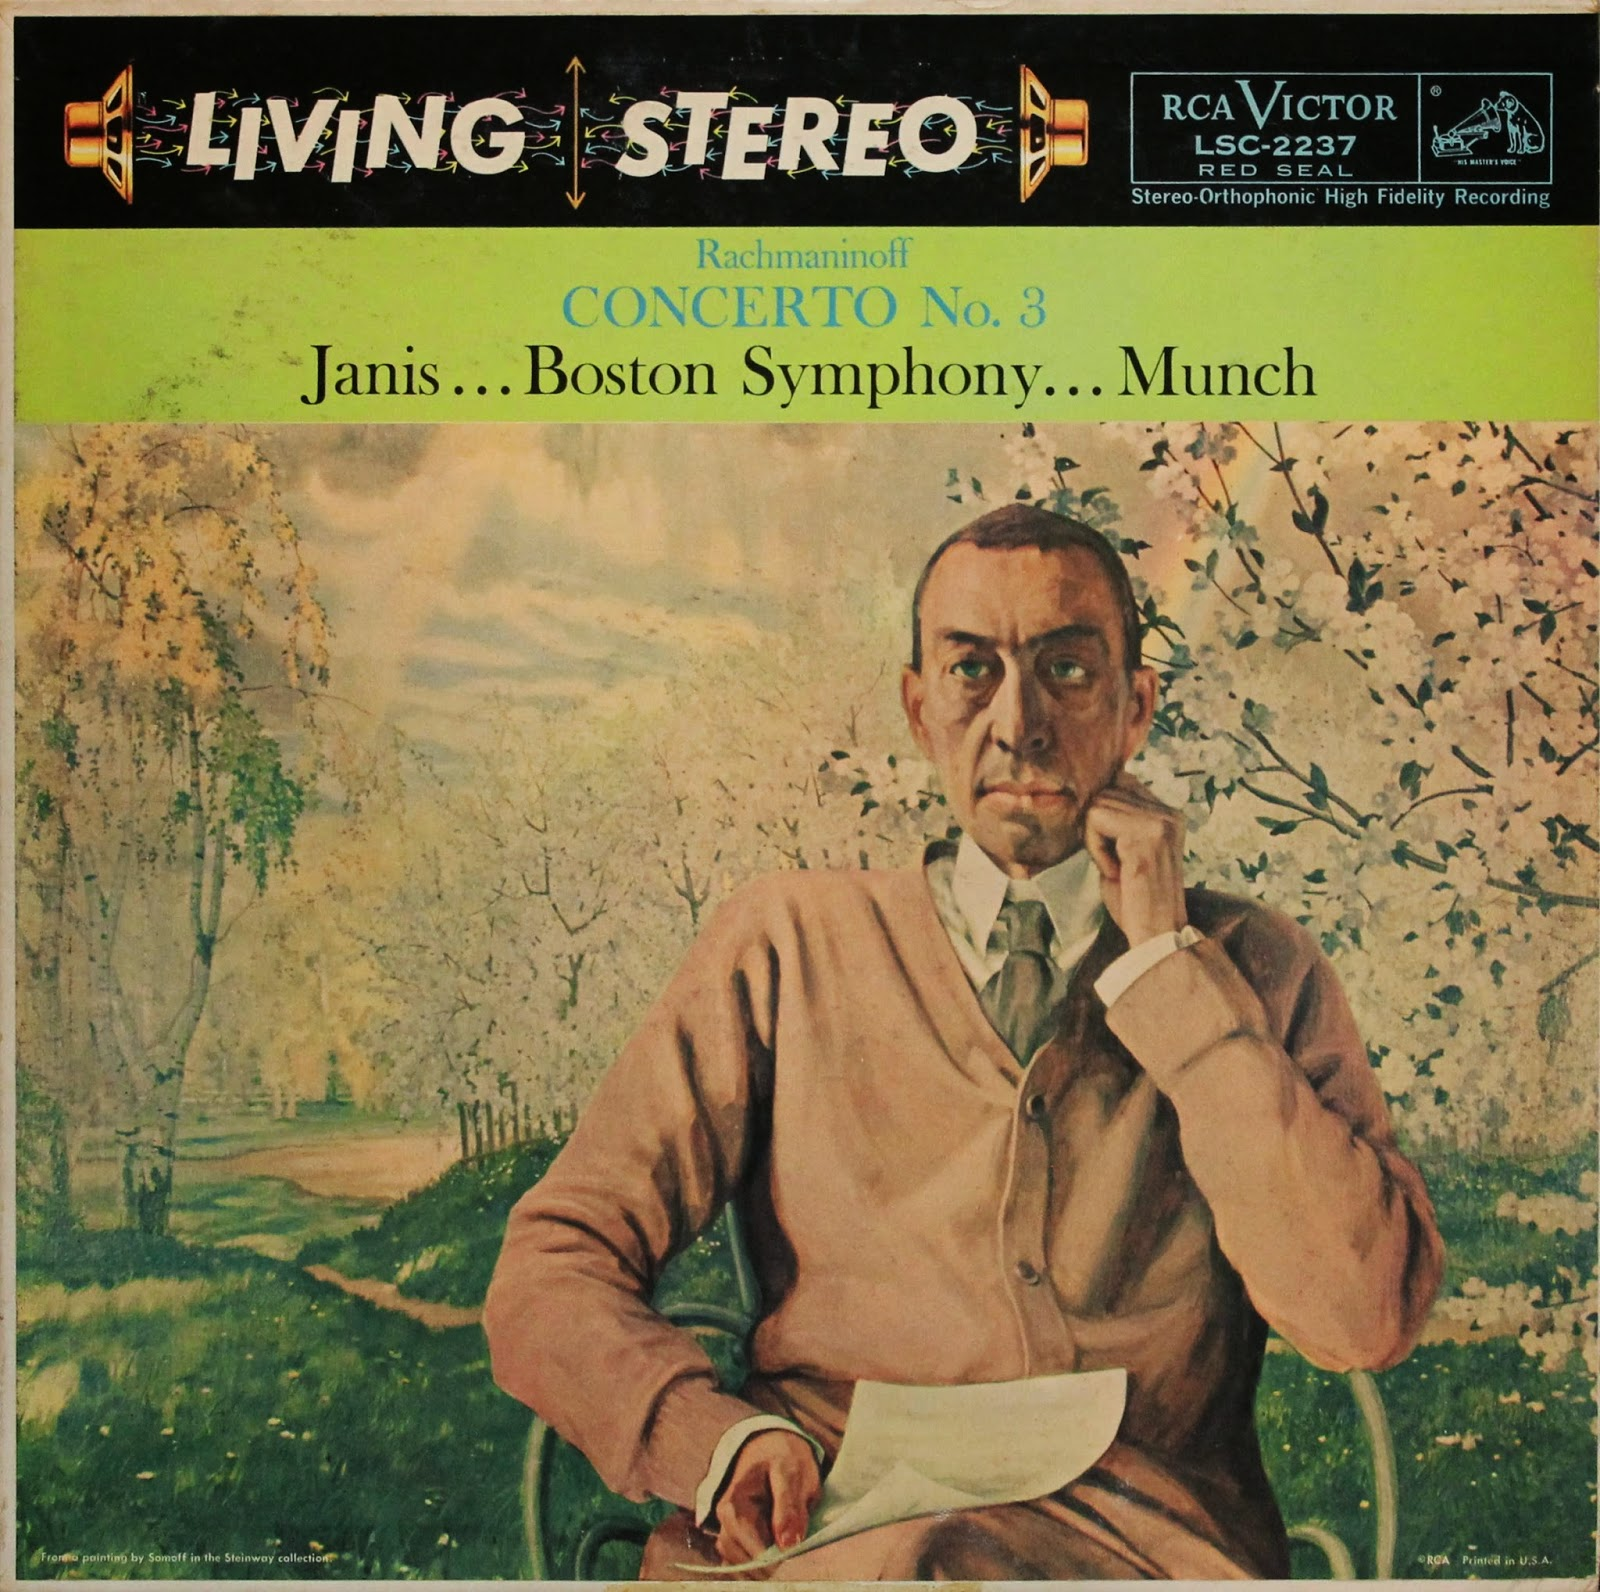 Living Stereo Rachmaninoff Concerto No. 3   Front:  Rachmaninoff Concerto No.3  Janis…Boston Symphony…Munch  Back:  Rachmaninoff  Concerto No. 3, in D Minor, Op.30  Byron Janis, Pianist  Boston Symphony Orchestra- Charles Munch, Conductor  Musical Director: Richard Mohr Engineer: Lewis Layton  Piano Concerto No.1 in F-Sharp Minor, Op.1  No. 1, Vivace – Moderato             12:15  No. 2, Andante             5:41  No. 3, Allegro vivace             7:37  Piano Concerto No.3 in D Minor, Op. 30  No.1, Allegro ma non tanto 14:39  No. 2, Intermezzo: Adagio – attaca subito 10:02  No.3, Finale: Alla breve 12:47  Recorded 1961  Total Play Time: 63:02